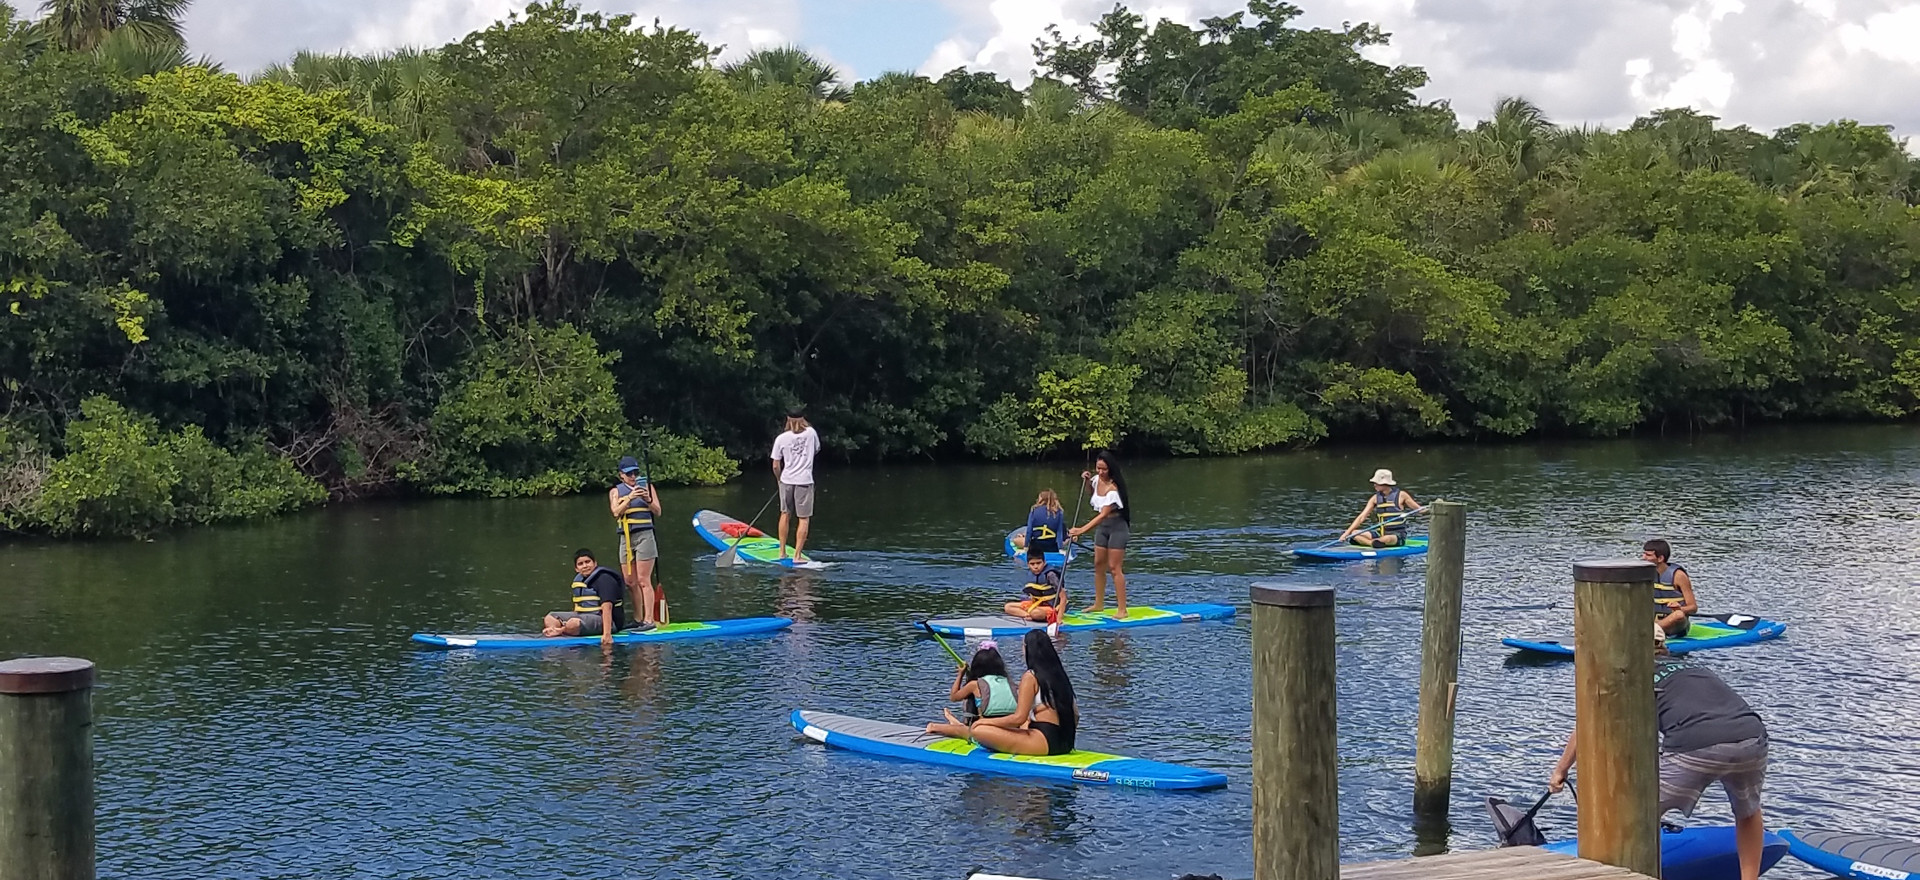 Paddle Board at Blueline & Lunch at Duffy's